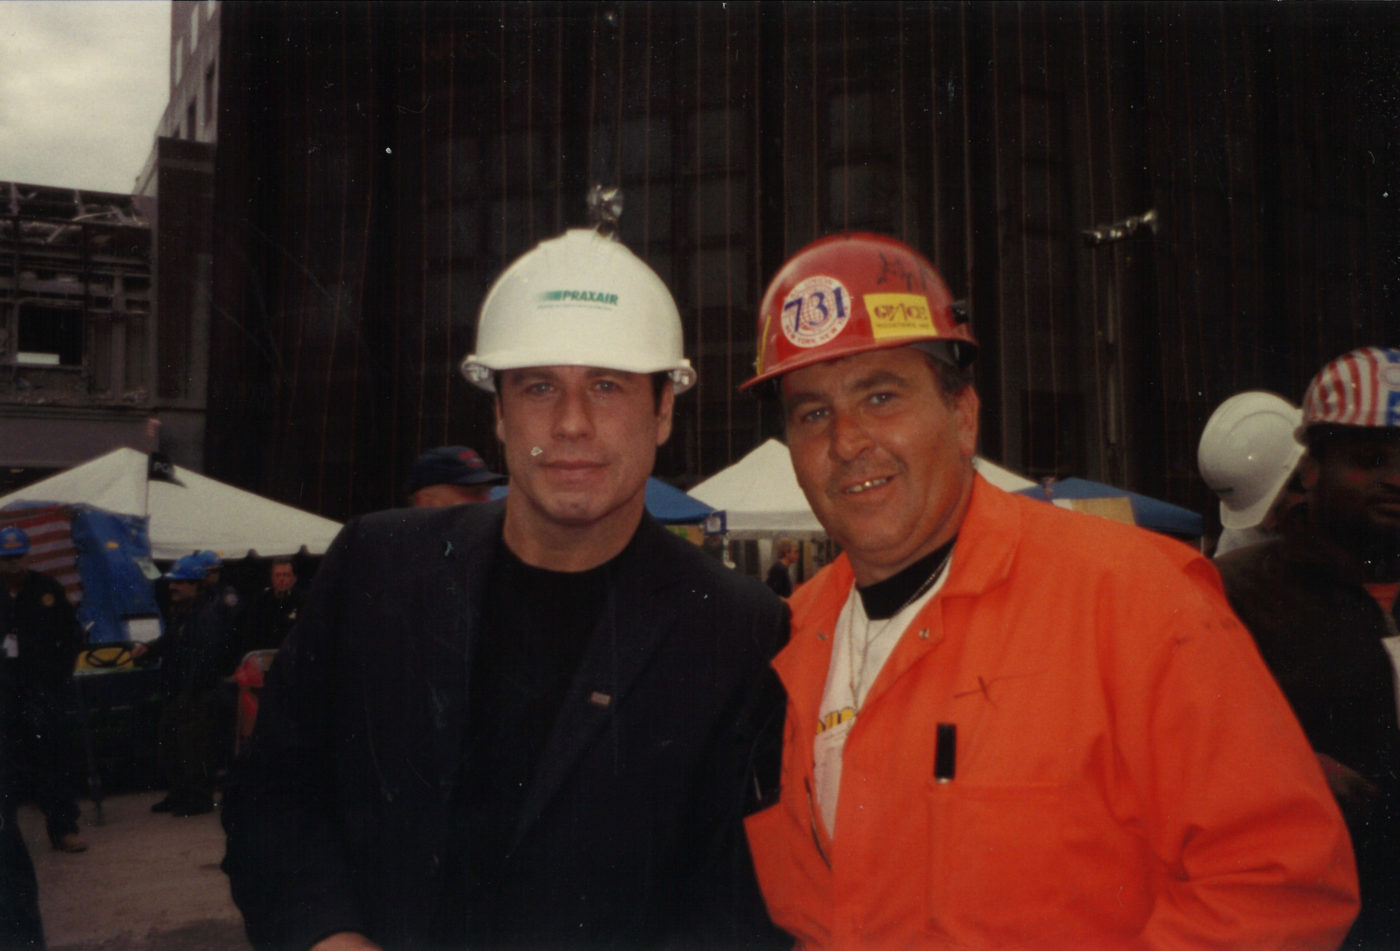 Unknown Worker from Local 731 with John Travolta at Ground Zero